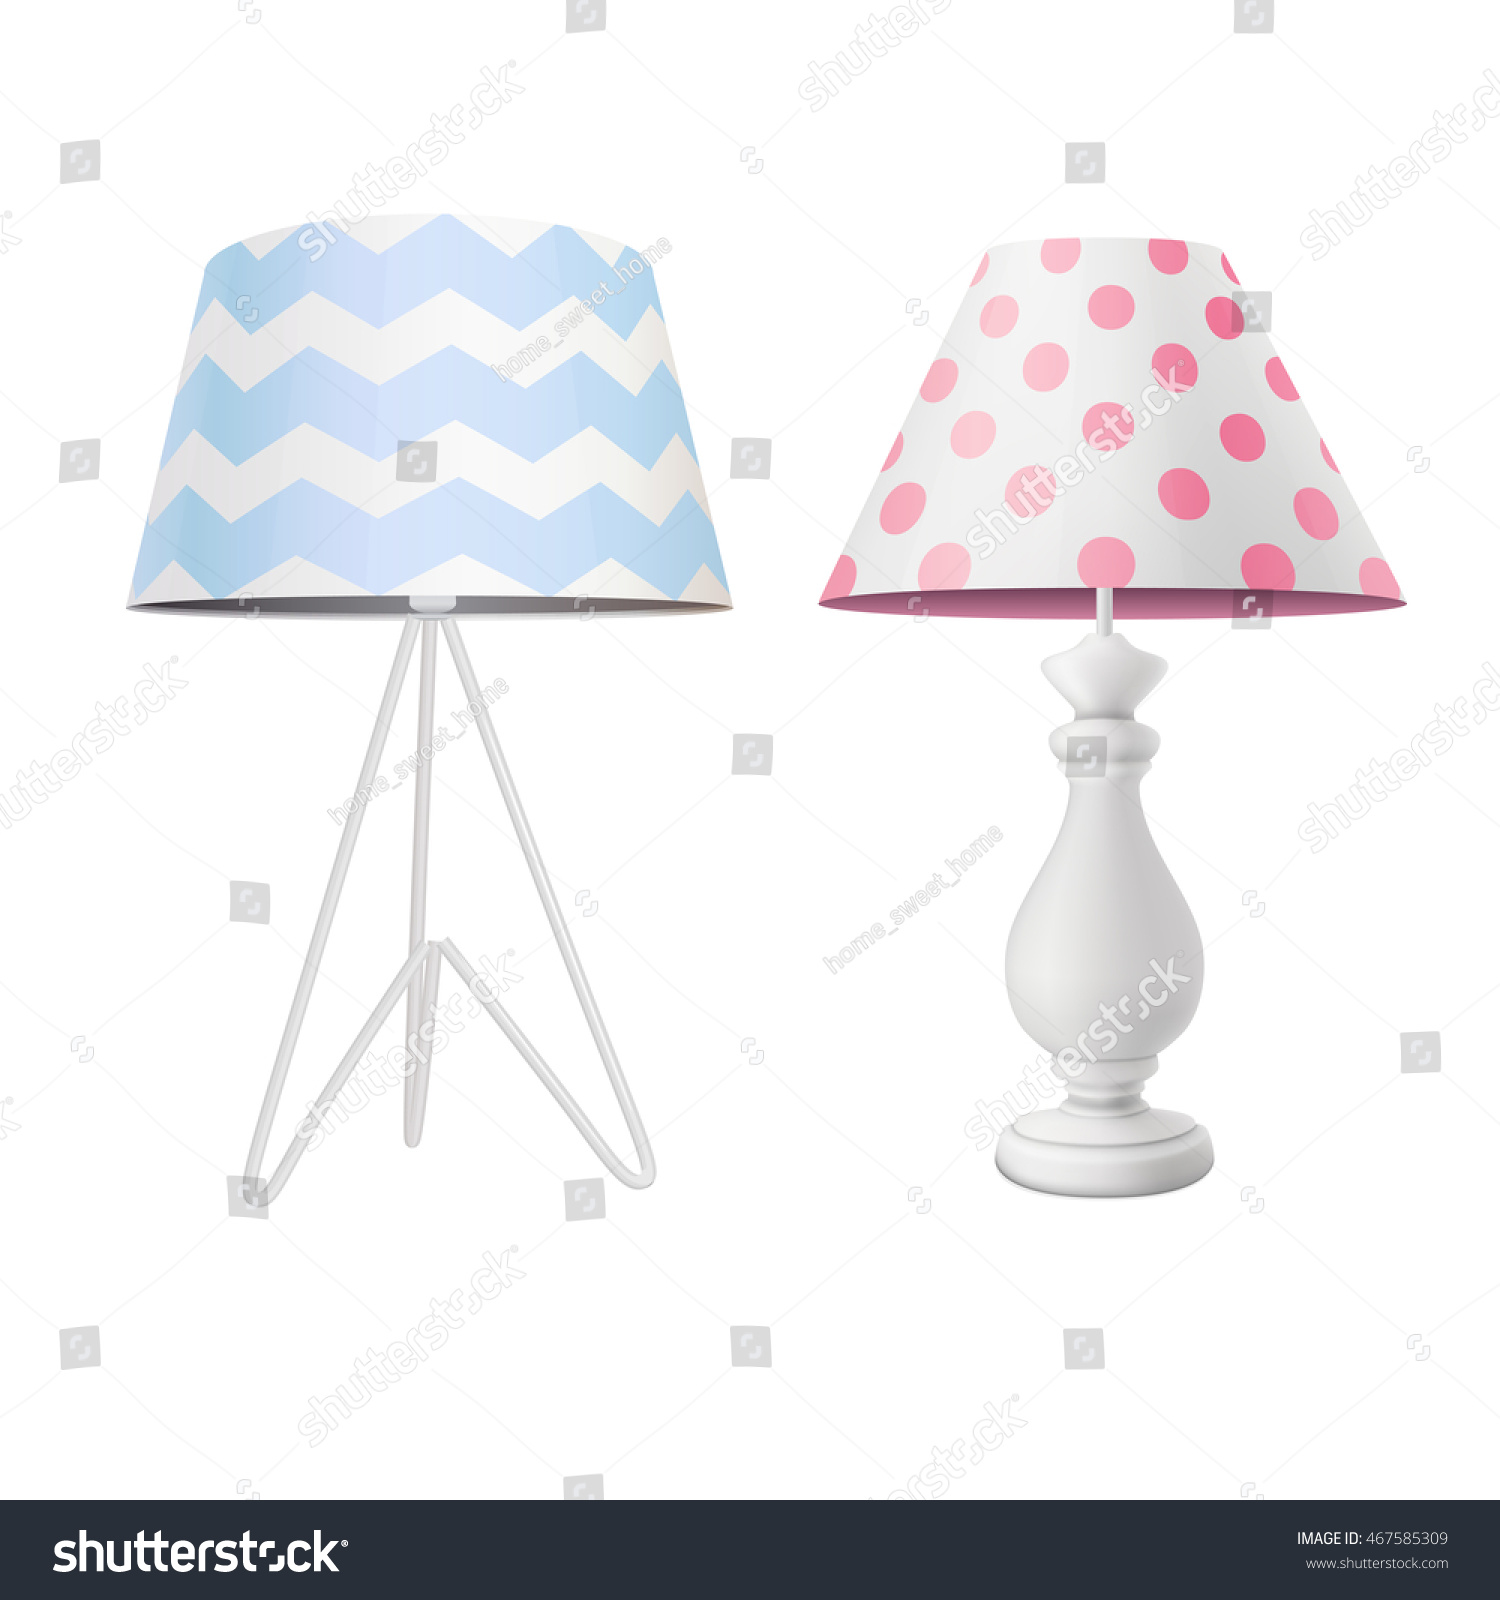 White modern table lamp blue printed vectores en stock 467585309 white modern table lamp with blue printed tapered lampshade on tripod base and classic lamp with aloadofball Images